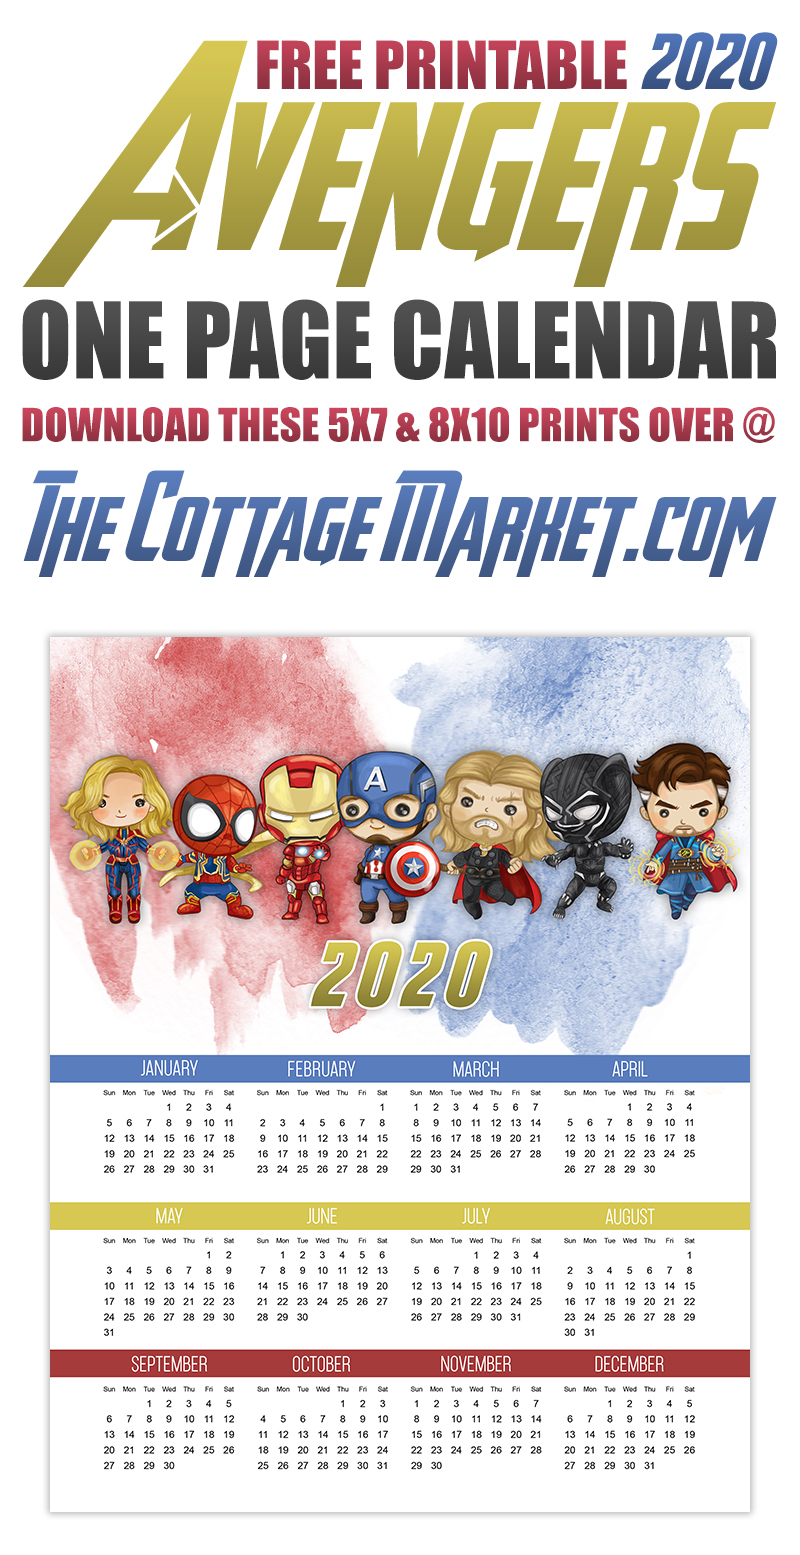 Here is a treat for you today!  a Free Printable 2020 Avengers One Page Calendar!  Perfect for all the Super Hero Lovers out there! A Free Printable Avengers 2020 Calendar is just what you need!